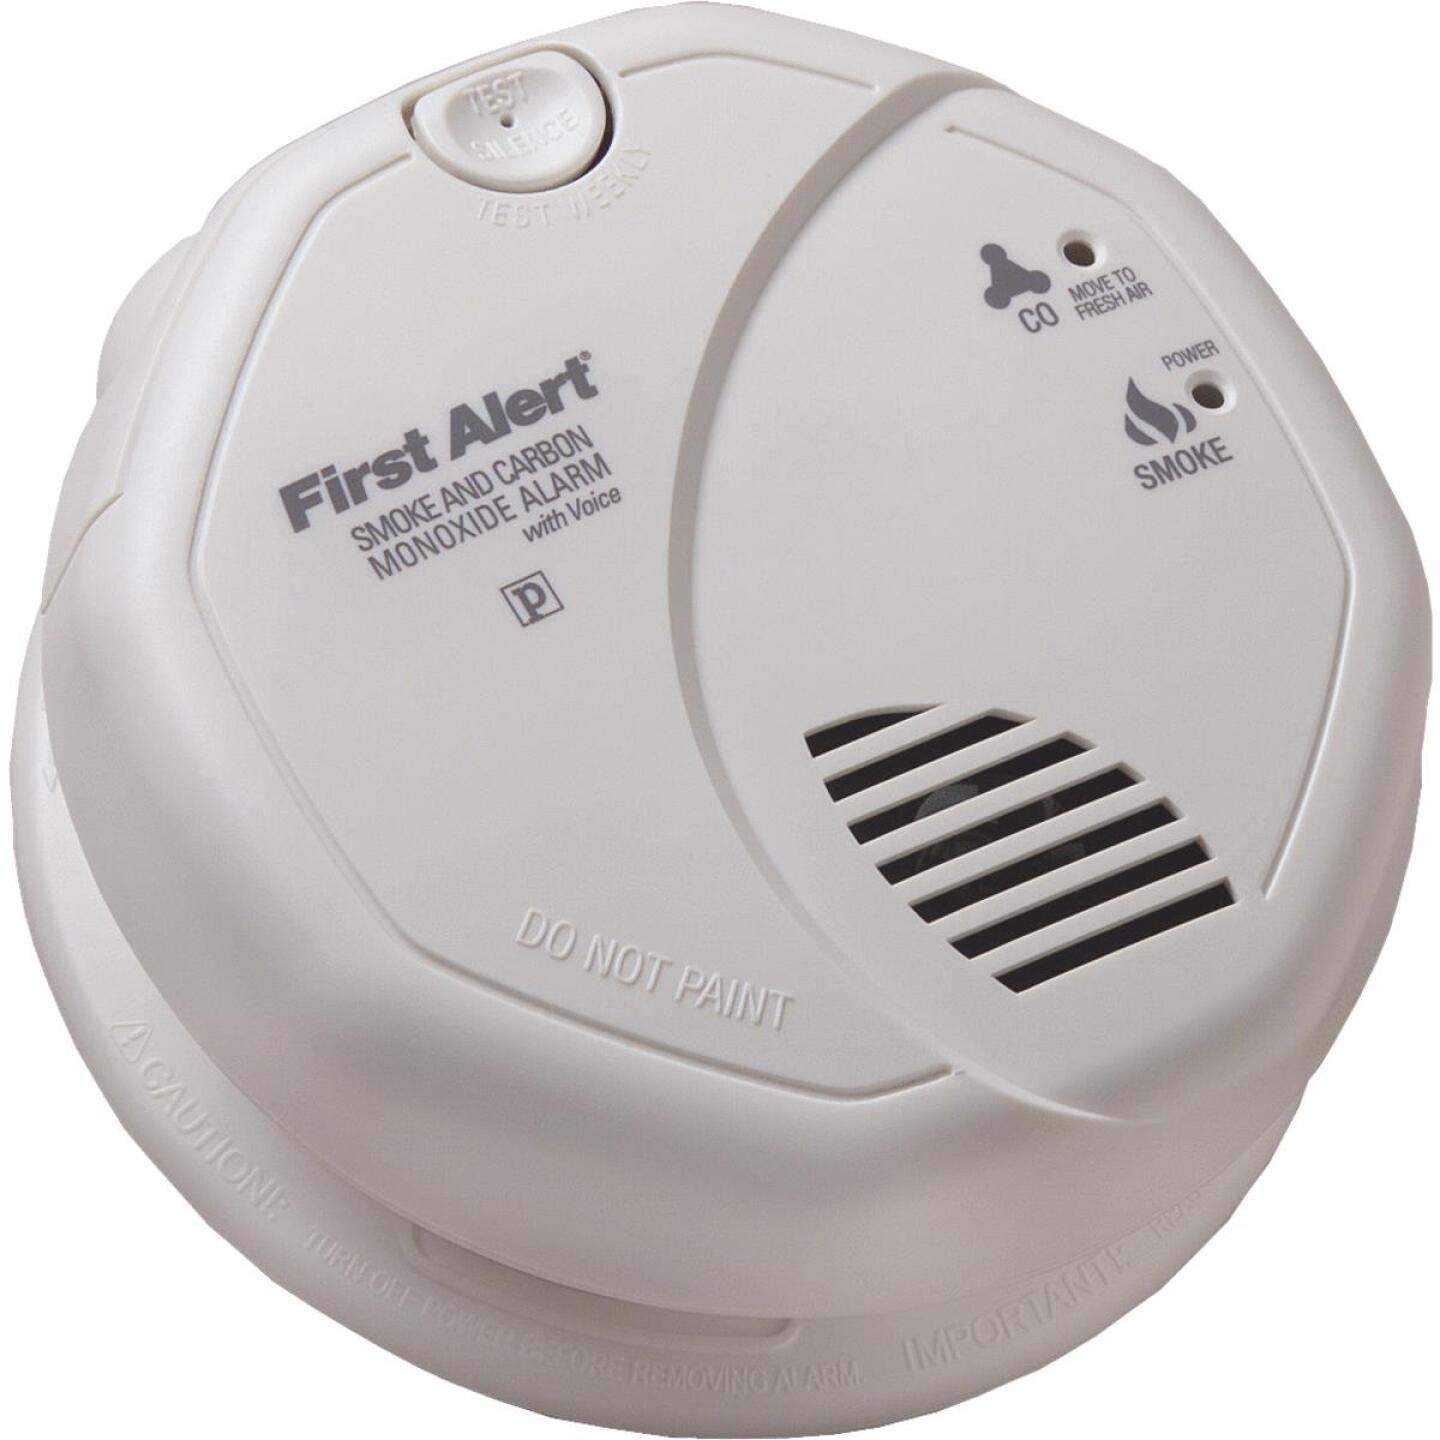 First Alert Hardwired 120V Photoelectric/Electrochemical Carbon Monoxide and Smoke Alarm with Voice Alert Image 1